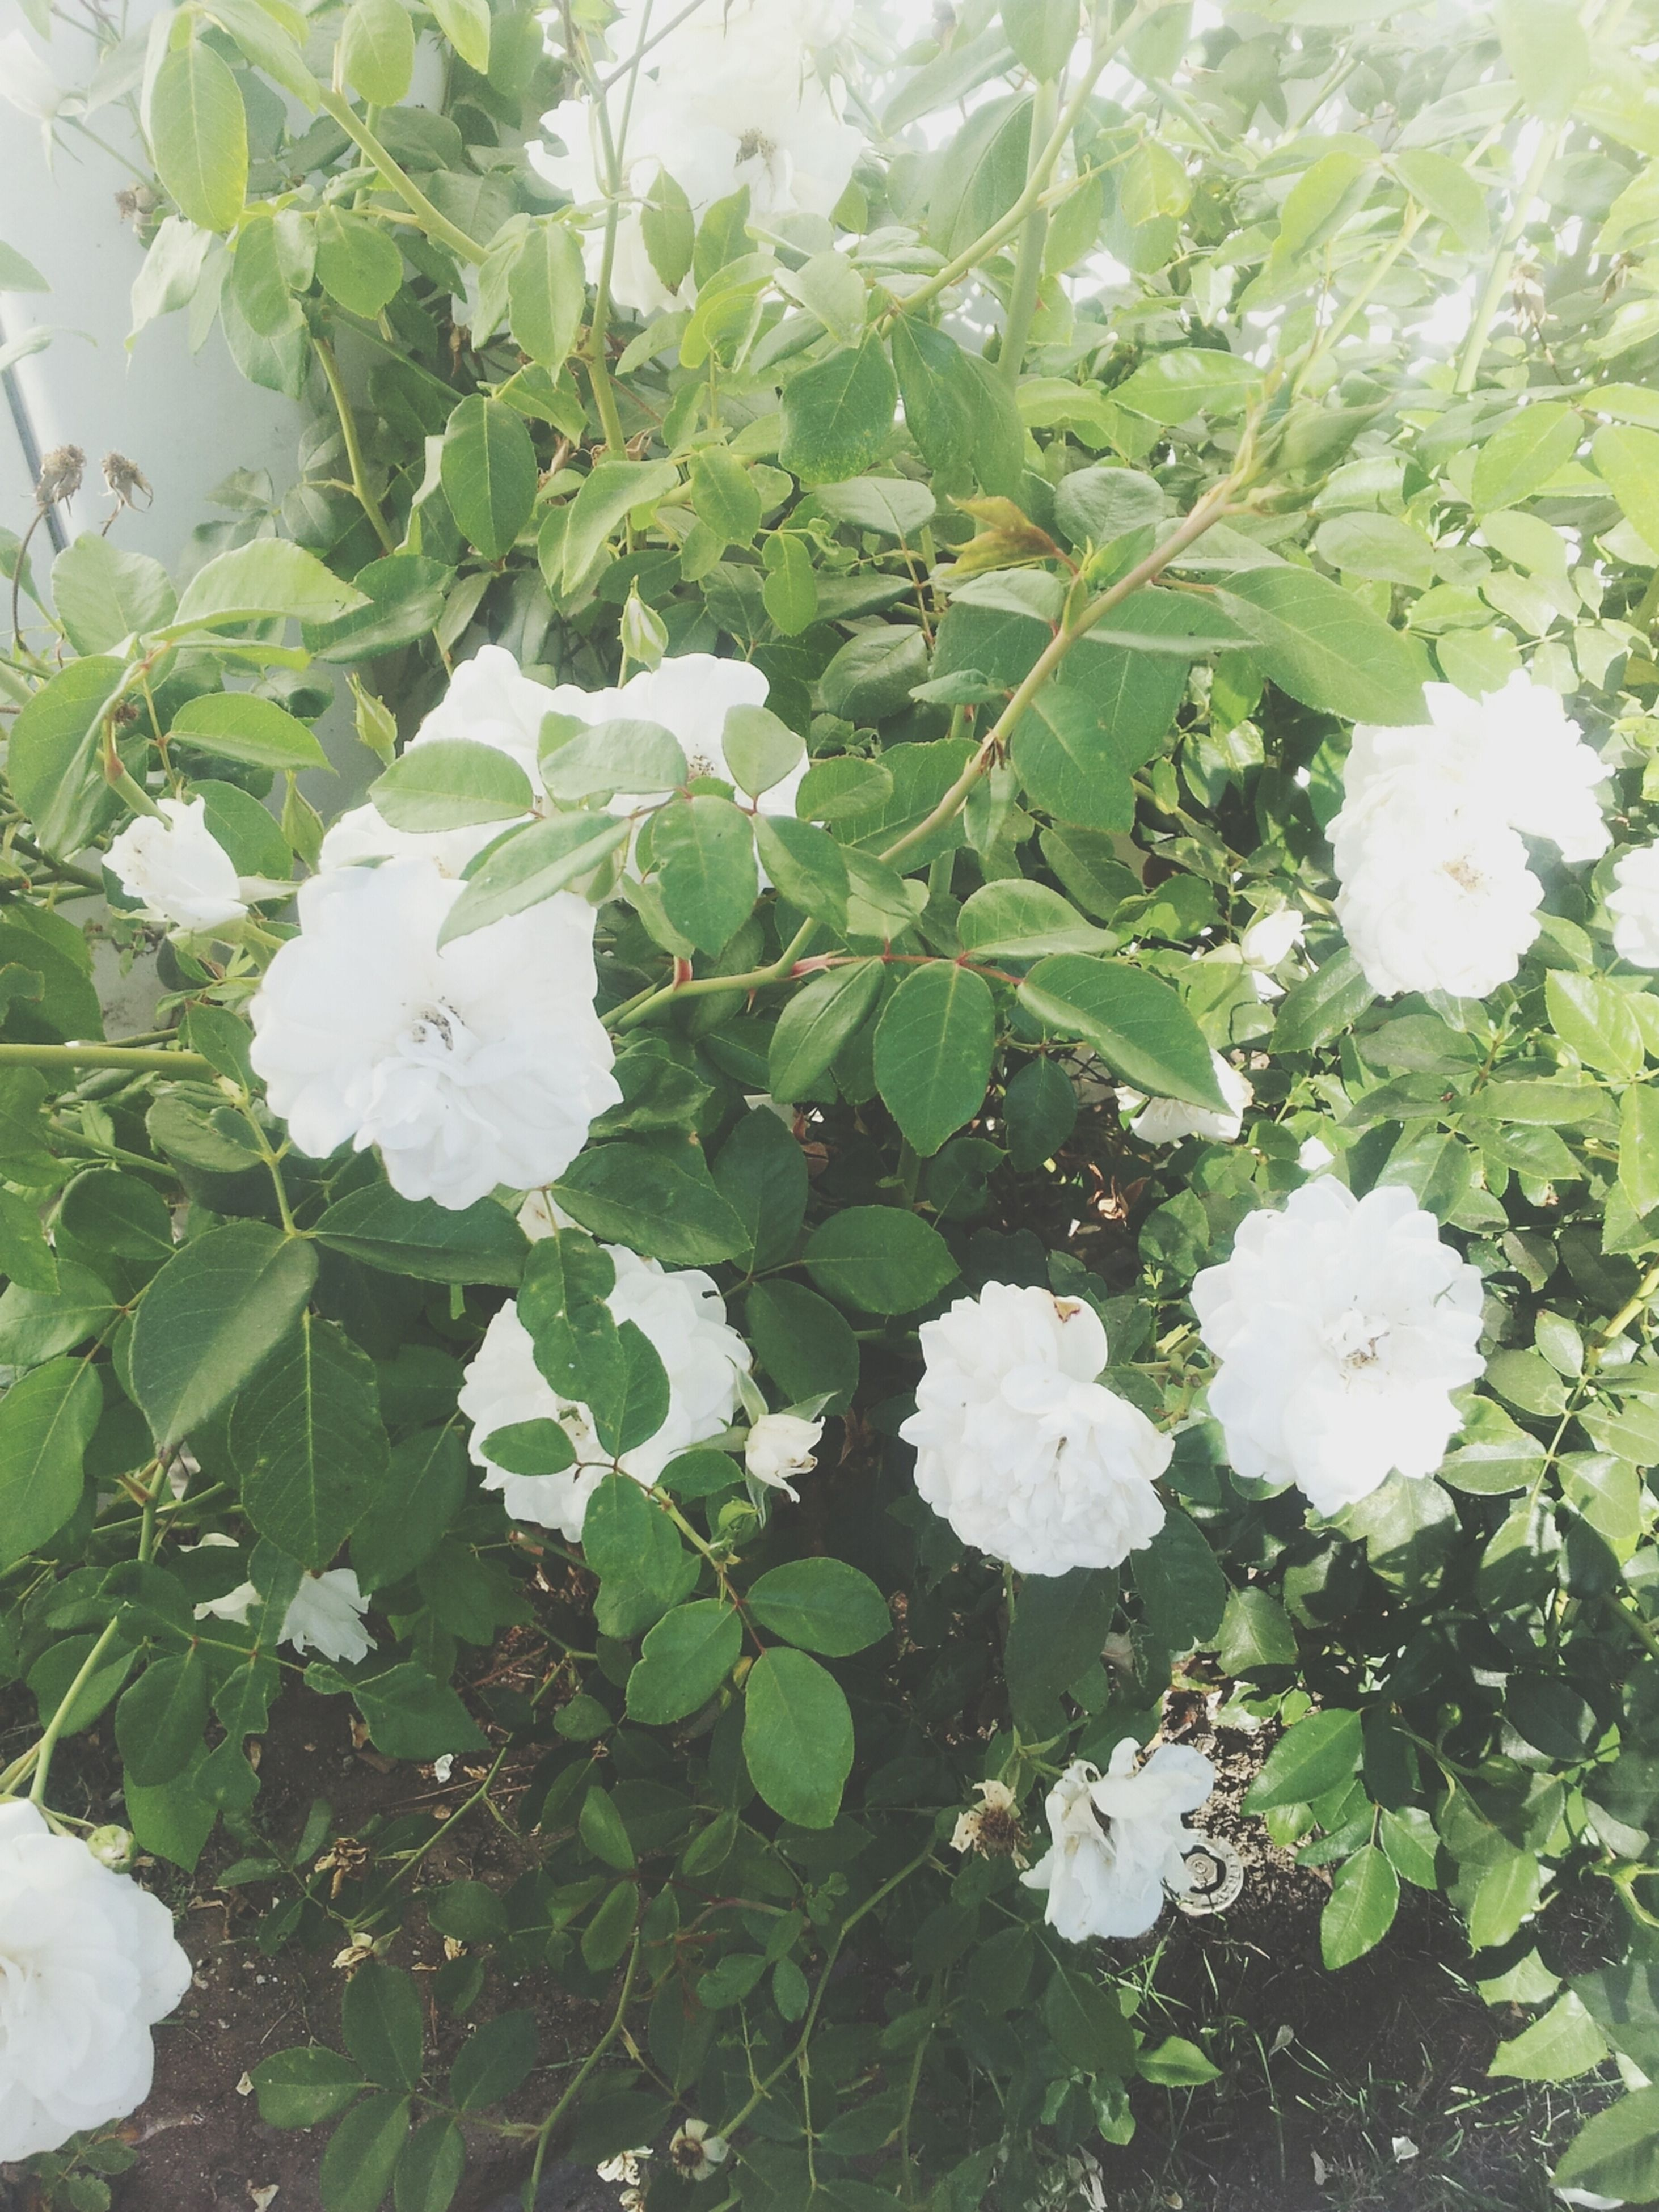 flower, white color, growth, freshness, leaf, fragility, plant, beauty in nature, nature, petal, green color, blooming, flower head, high angle view, white, close-up, in bloom, day, outdoors, blossom